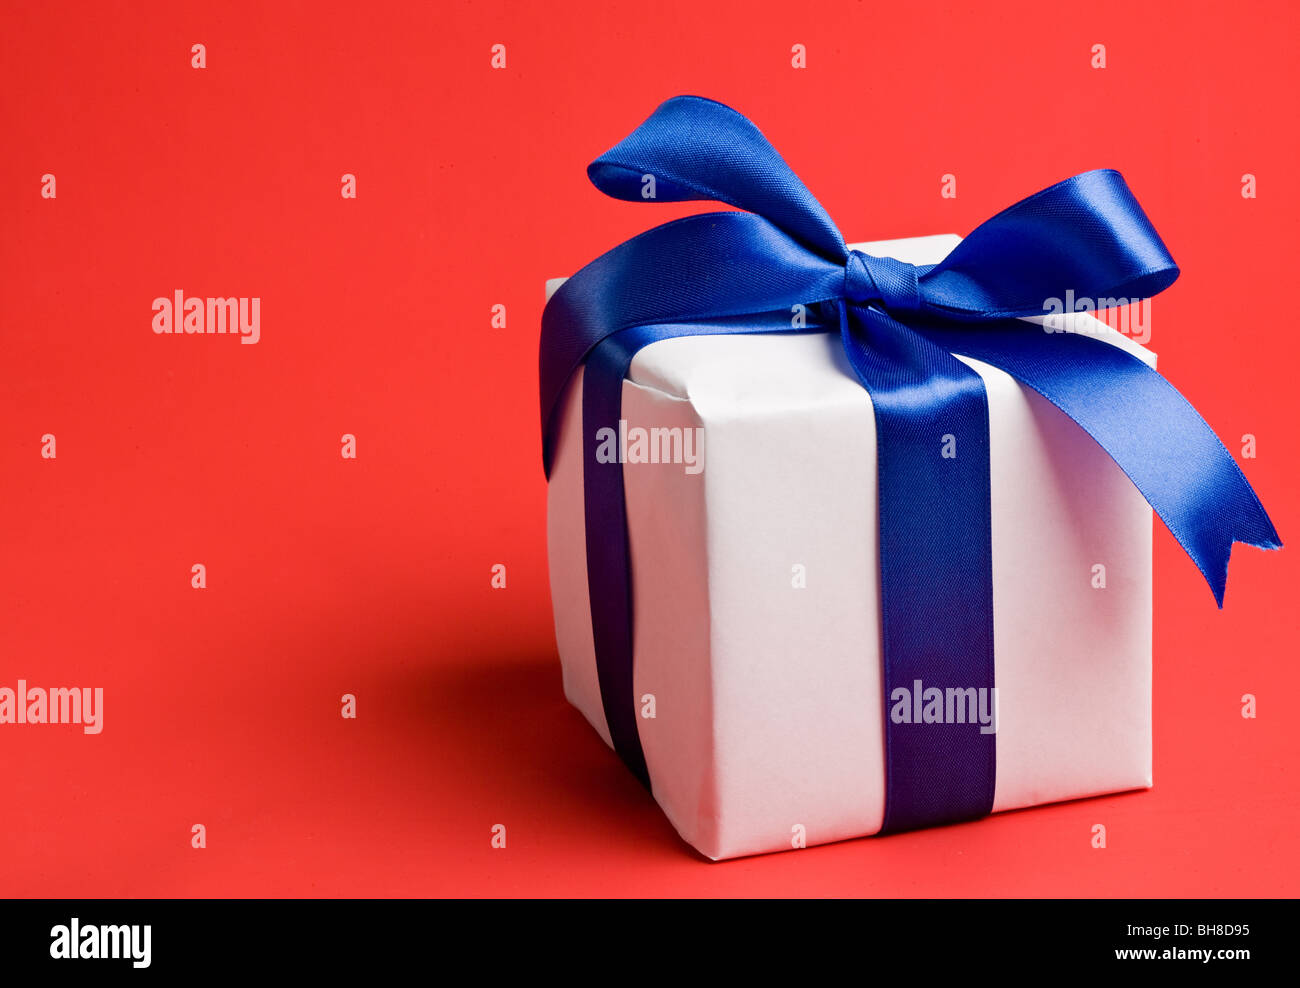 white gift with a blue ribbon on a red background - Stock Image